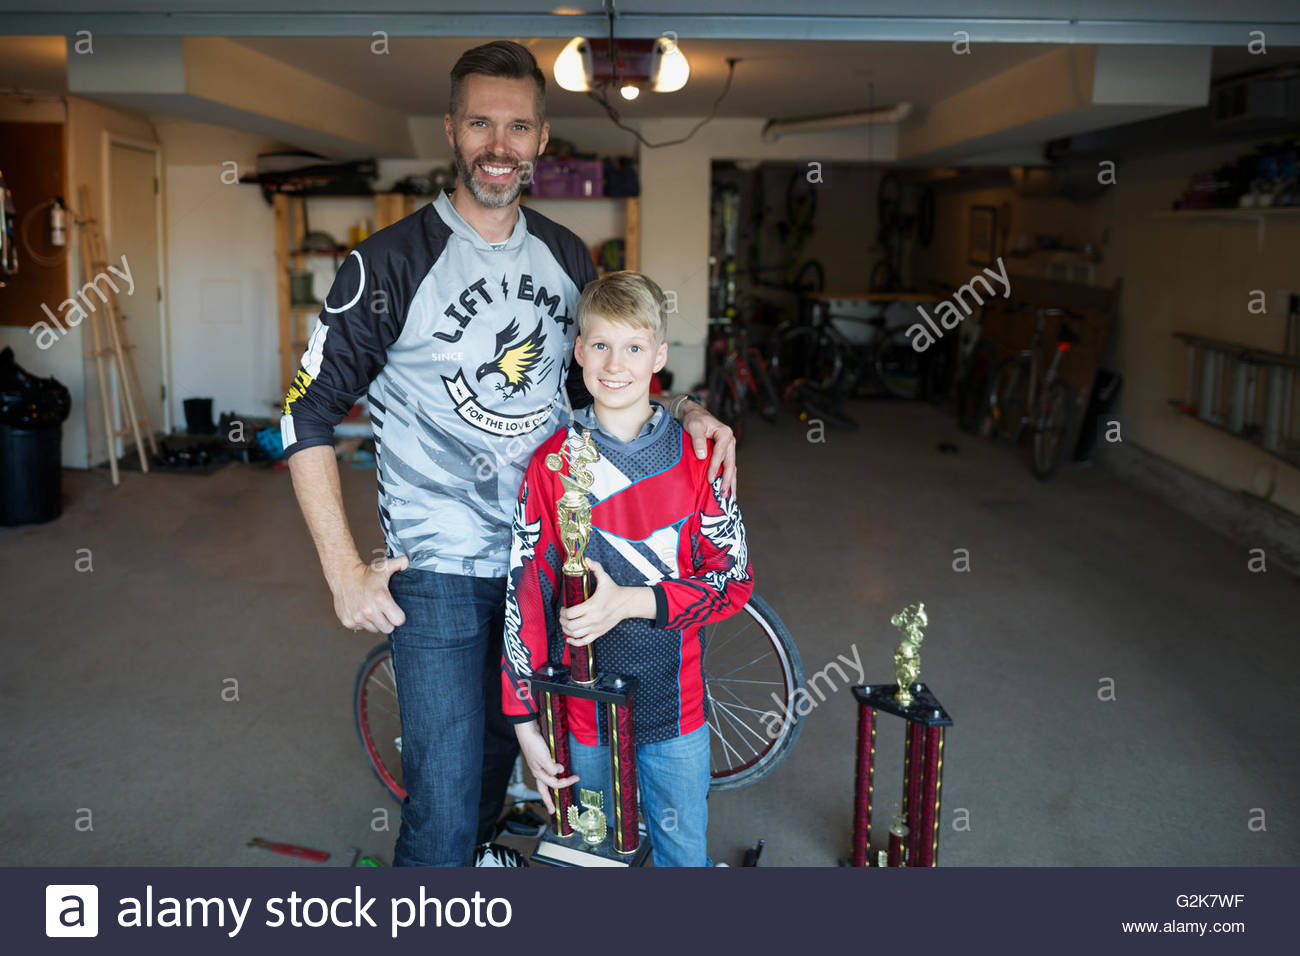 Portrait Smiling Father And Son With Trophies In Garage